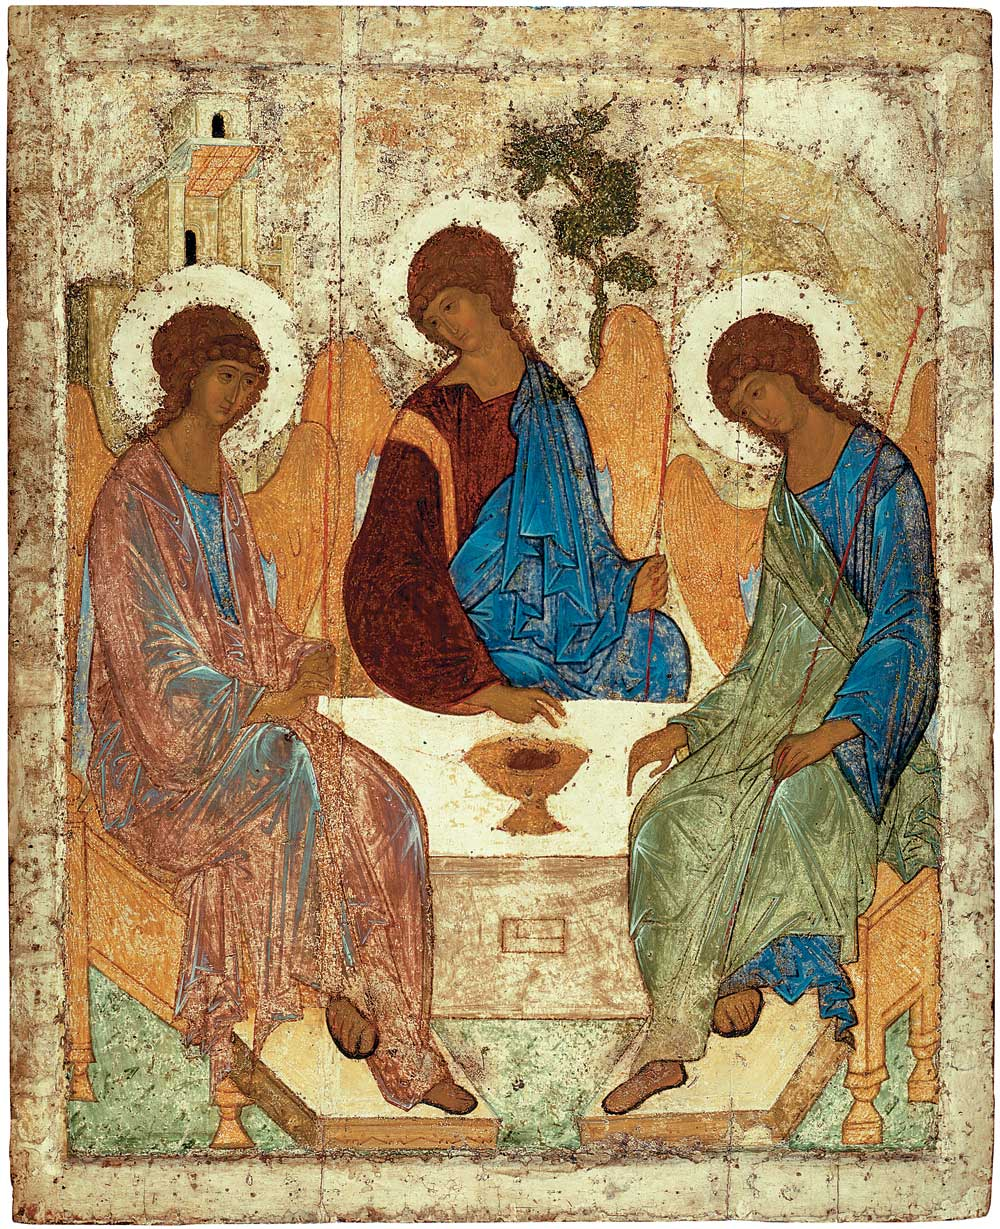 The Hospitality of Abraham  is an icon created by Russian painter Andrei Rublev in the 15th century.